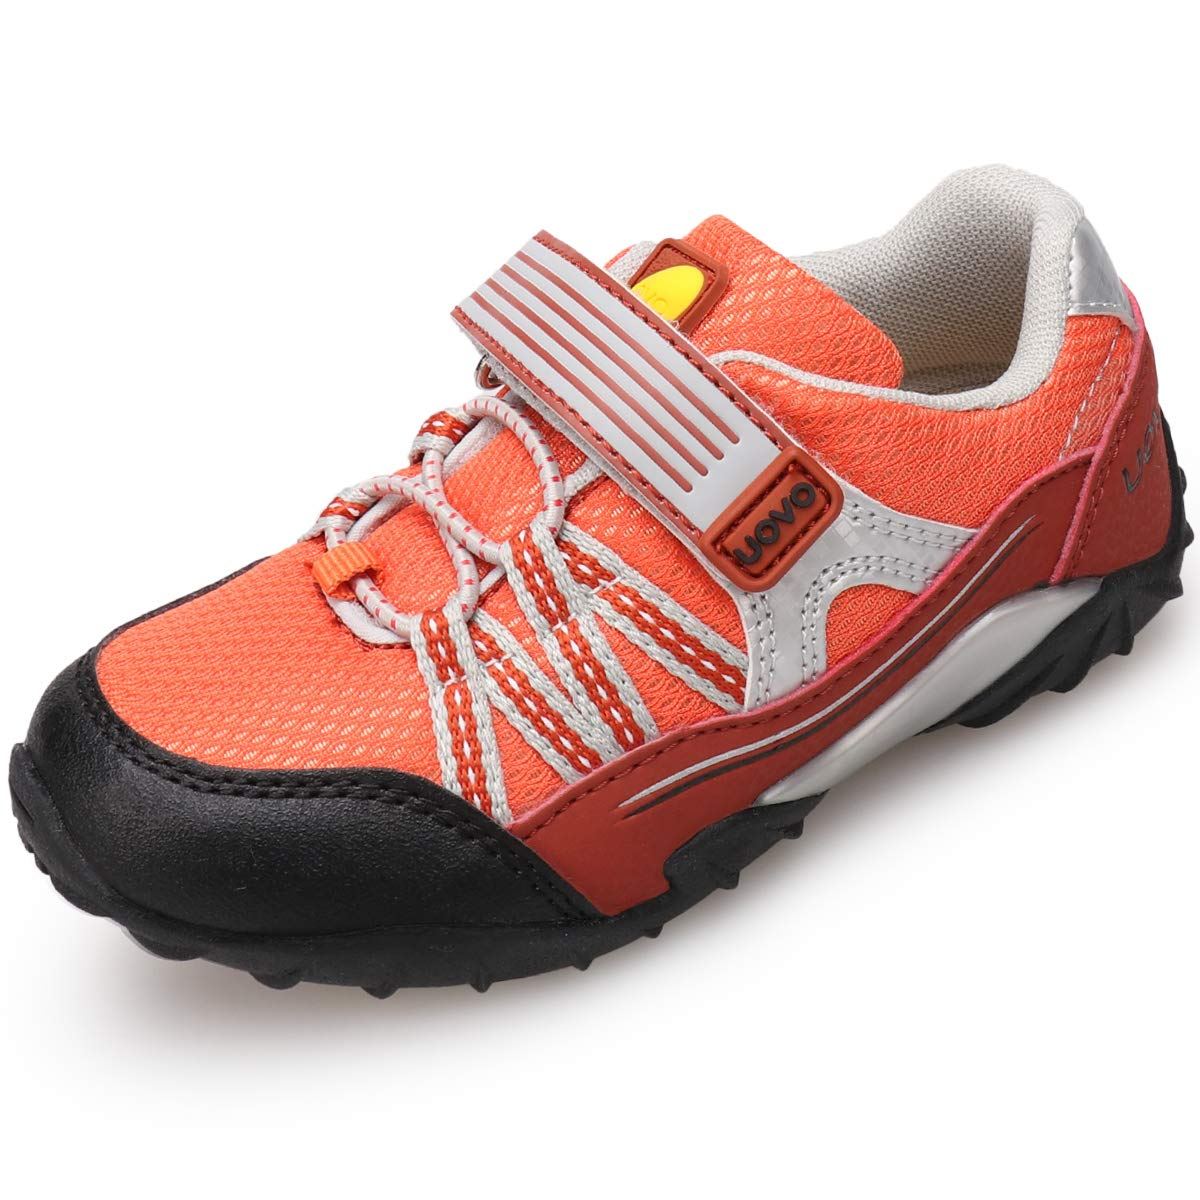 UOVO Boys Running Shoes Hiking Shoes Little Kids Sport Sneakers Athletic Outdoor Tennis Shoes (1 M US Little Kid,Orange)